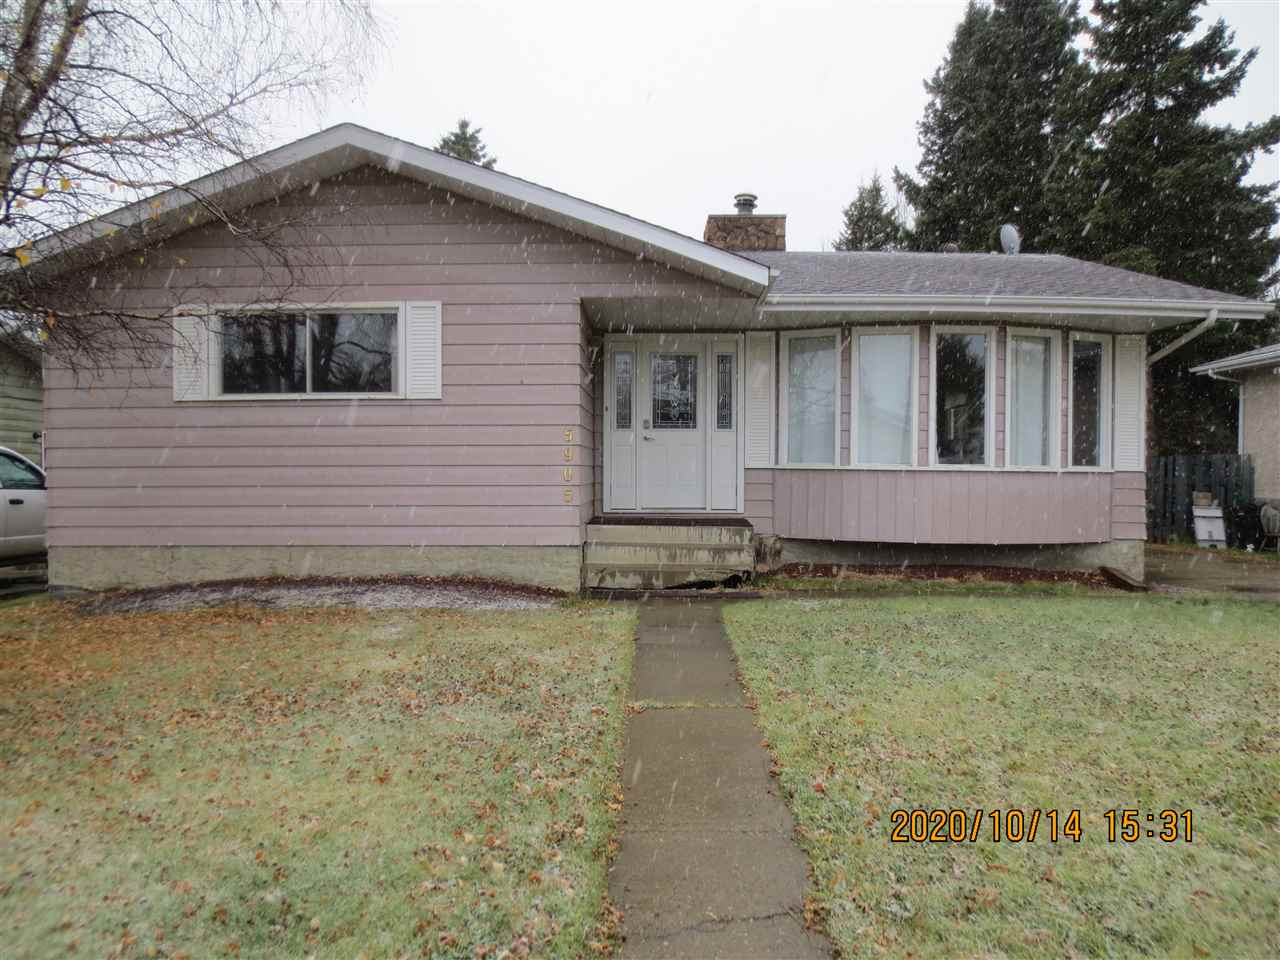 Listed below value for quick sale! Family Home in a quiet Cul De Sac with a Spacious 1400+ sq/ft. home on large 60 x 140 lot in the Westhaven area. Three bedrooms up and two down, three bathrooms, large kitchen with plenty of cupboards and counter tops, two curved staircases lead to the basement add to the versatility and style of this home. Many upgrades include a newer kitchen, lighting, front porch window, patio door, front and back doors, doors, chimney liner in wood fireplace, furnace, main floor bathrooms, and many of the appliances. Large fenced back yard backs onto bush and the Town walking trail, yard has a variety of trees and shrubs with a shed, long cement driveway with RV Parking and room to build a garage.